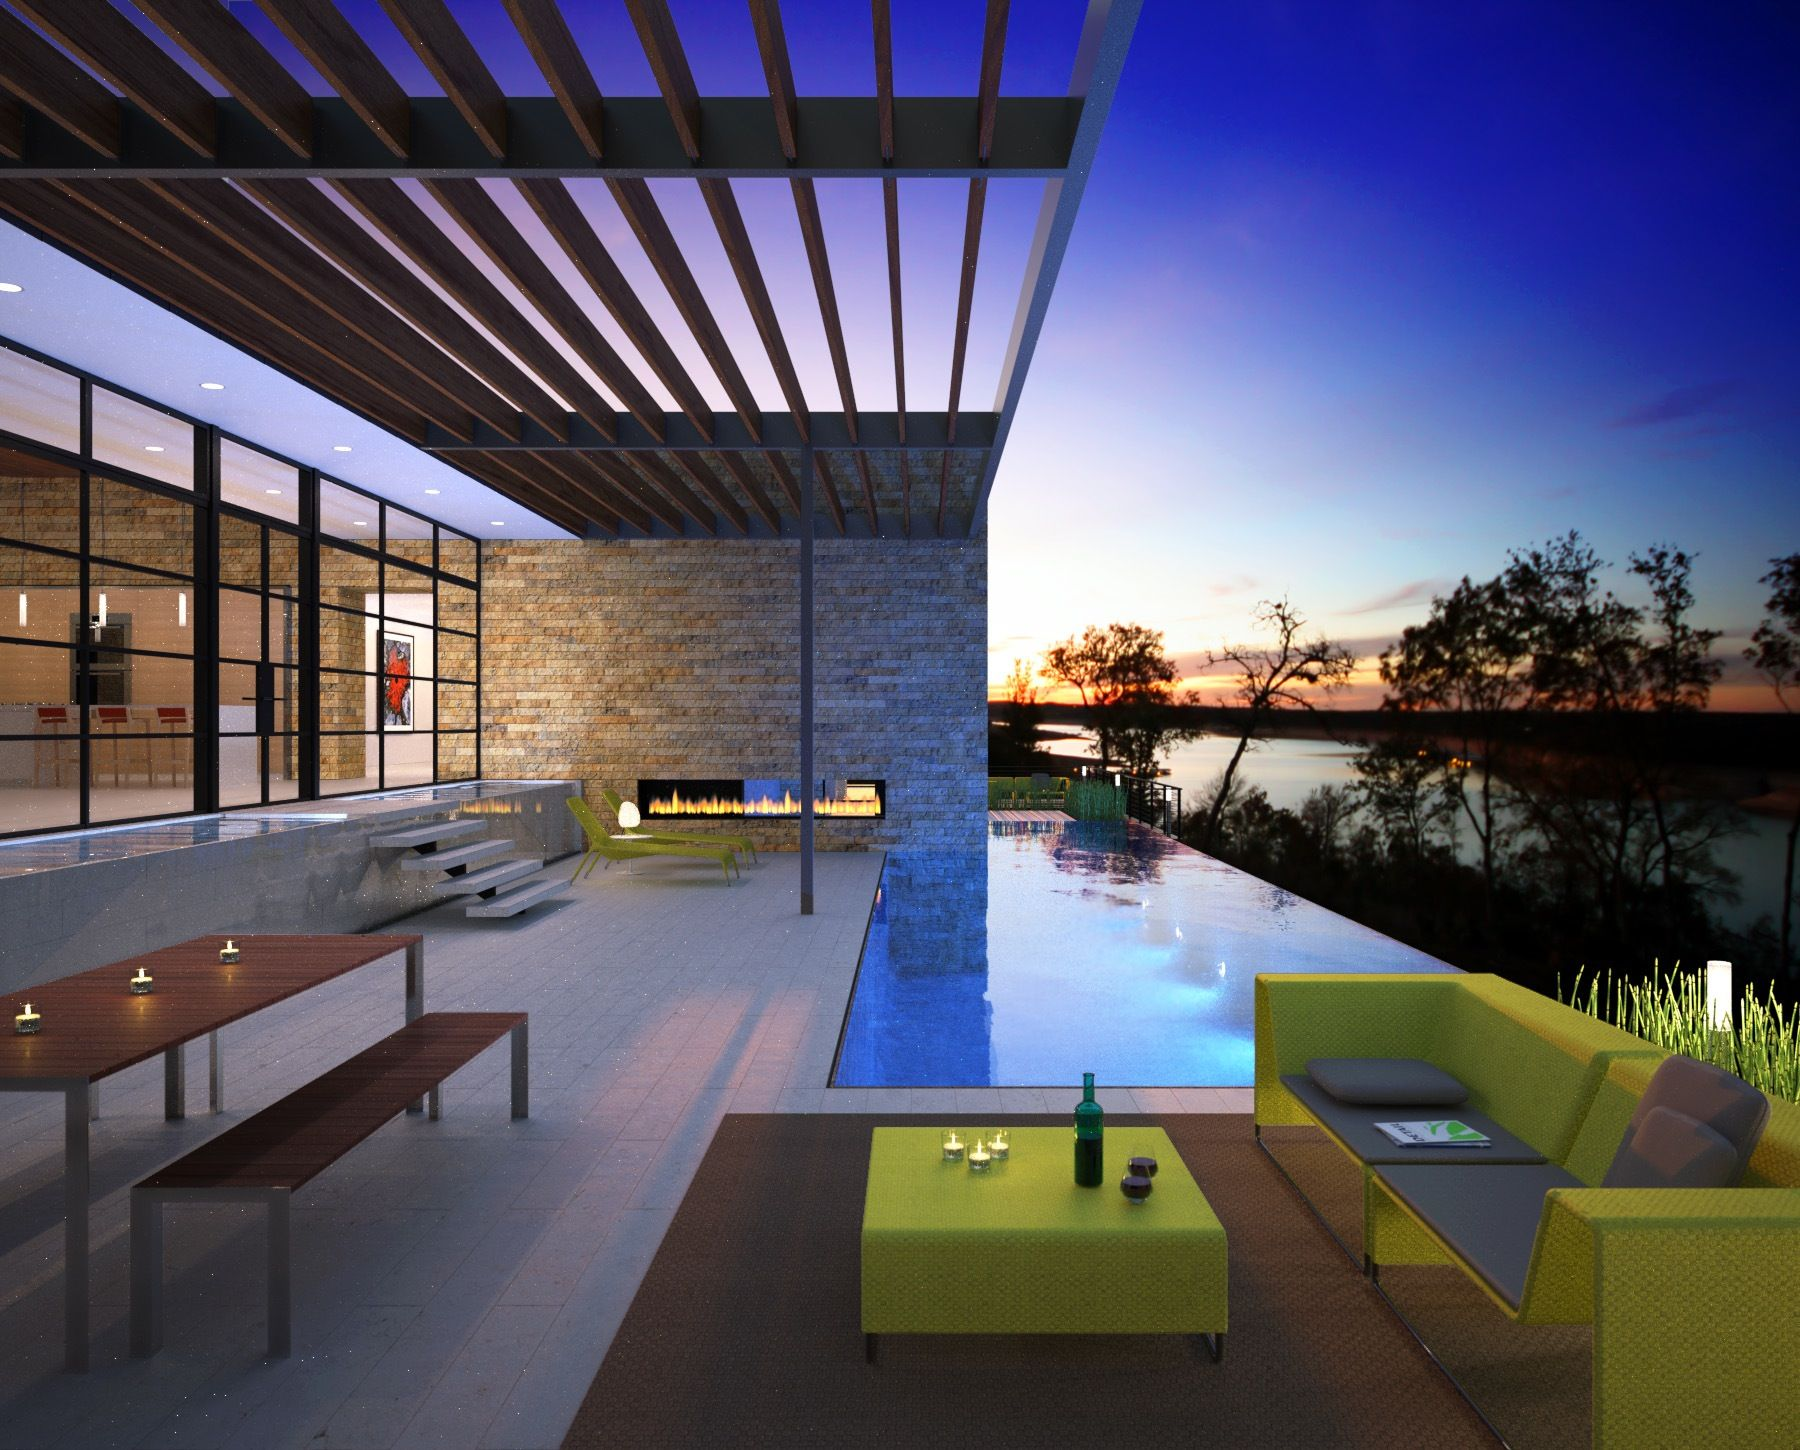 Luxury modern home to be built by foursquare builders Lake house builders